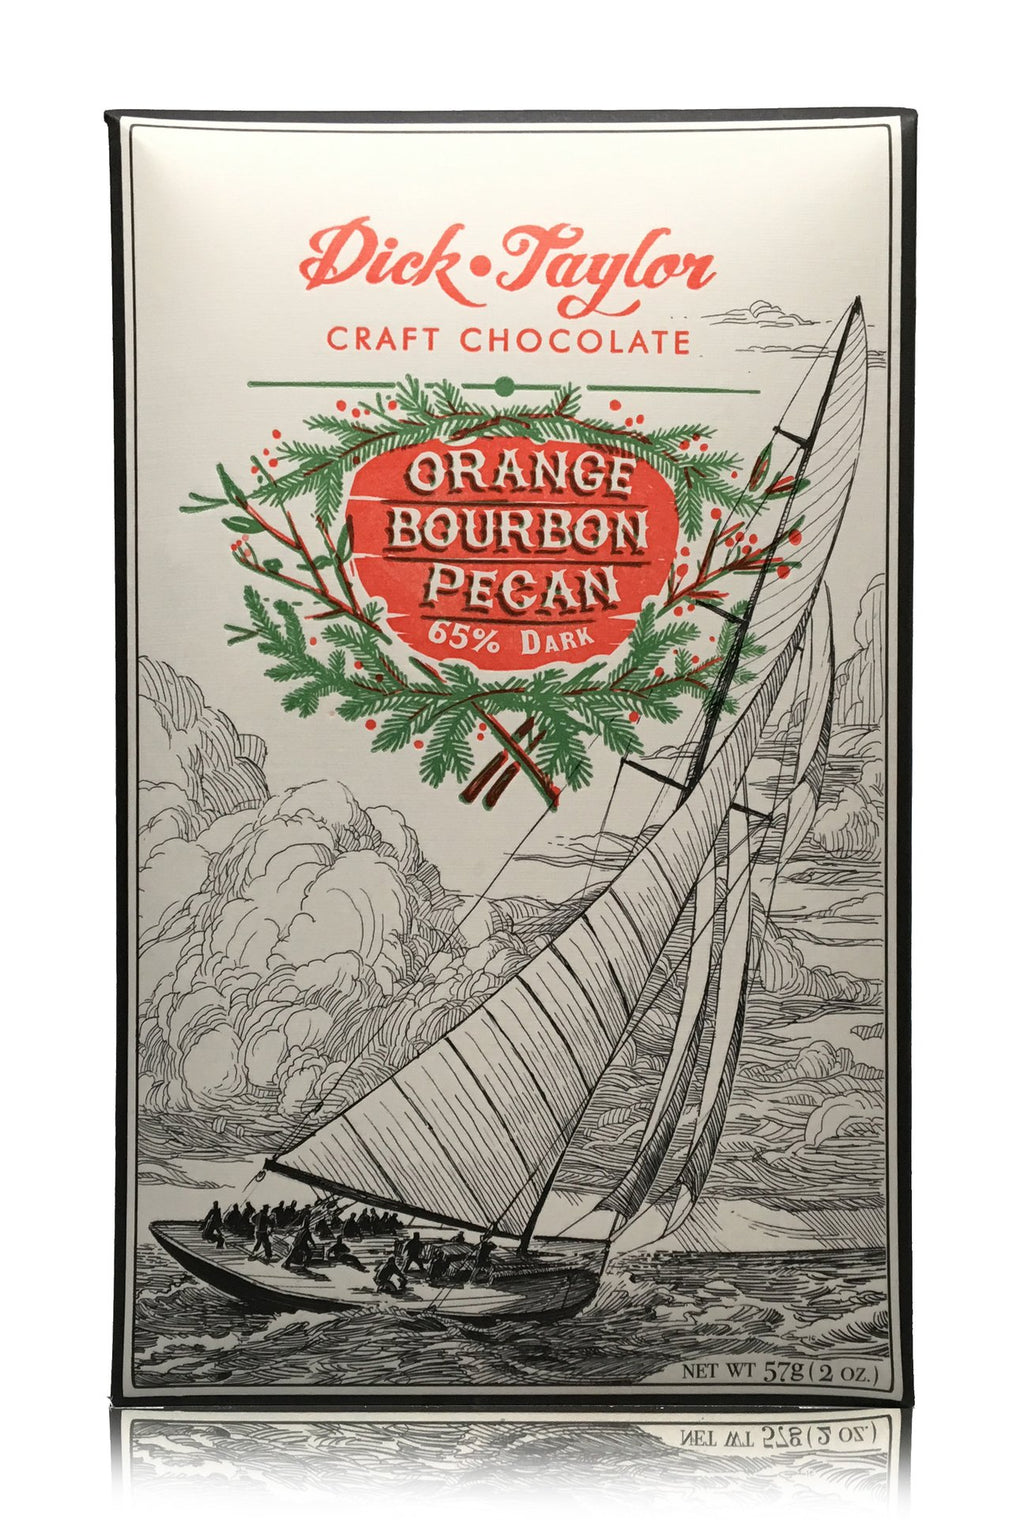 Dick Taylor Dark Chocolate - Orange Bourbon Pecan